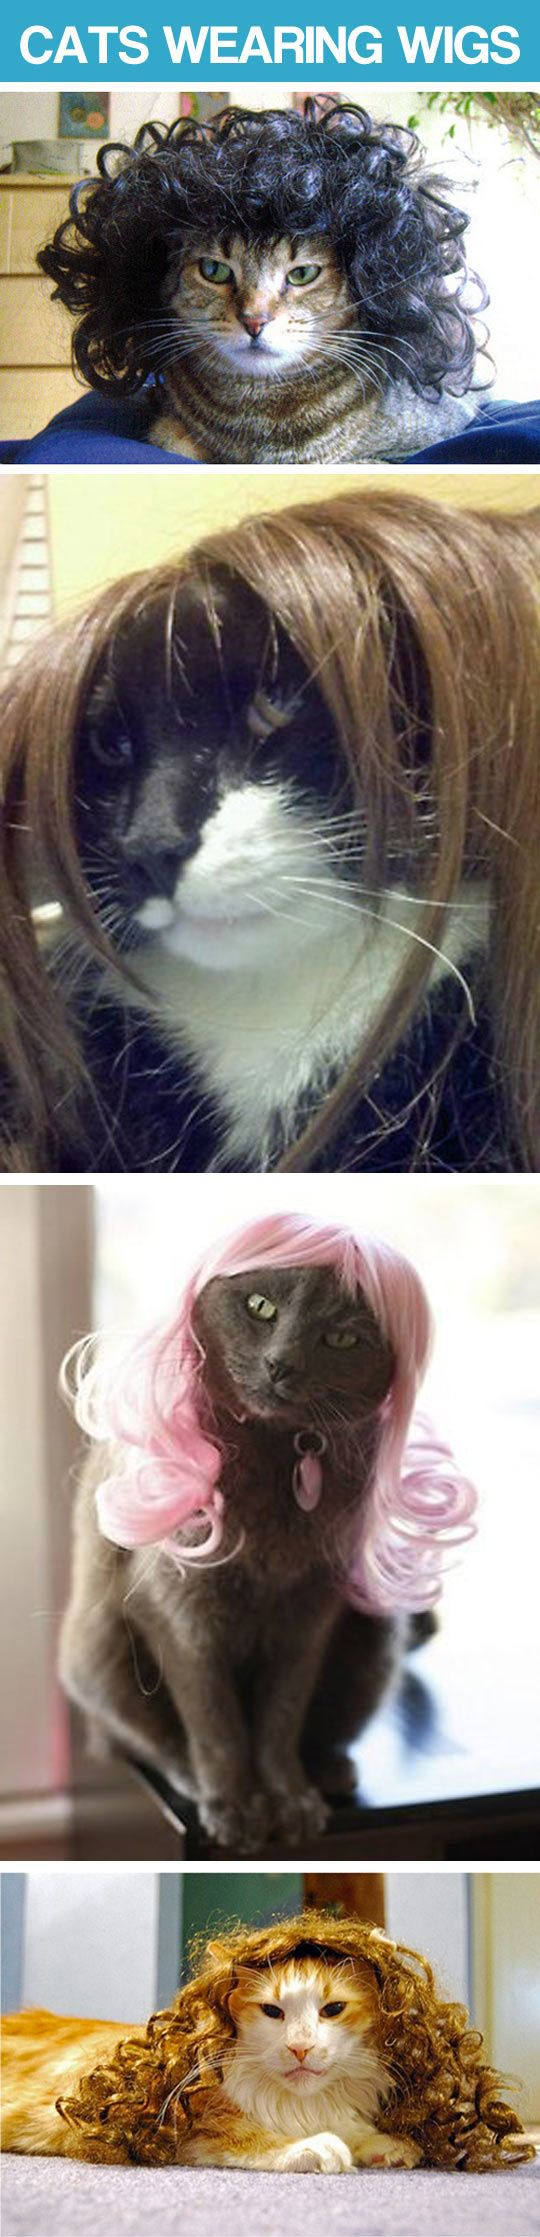 Cats wearing wigs…I think that one in the pink is going for the Katy Perry look. What do you think?